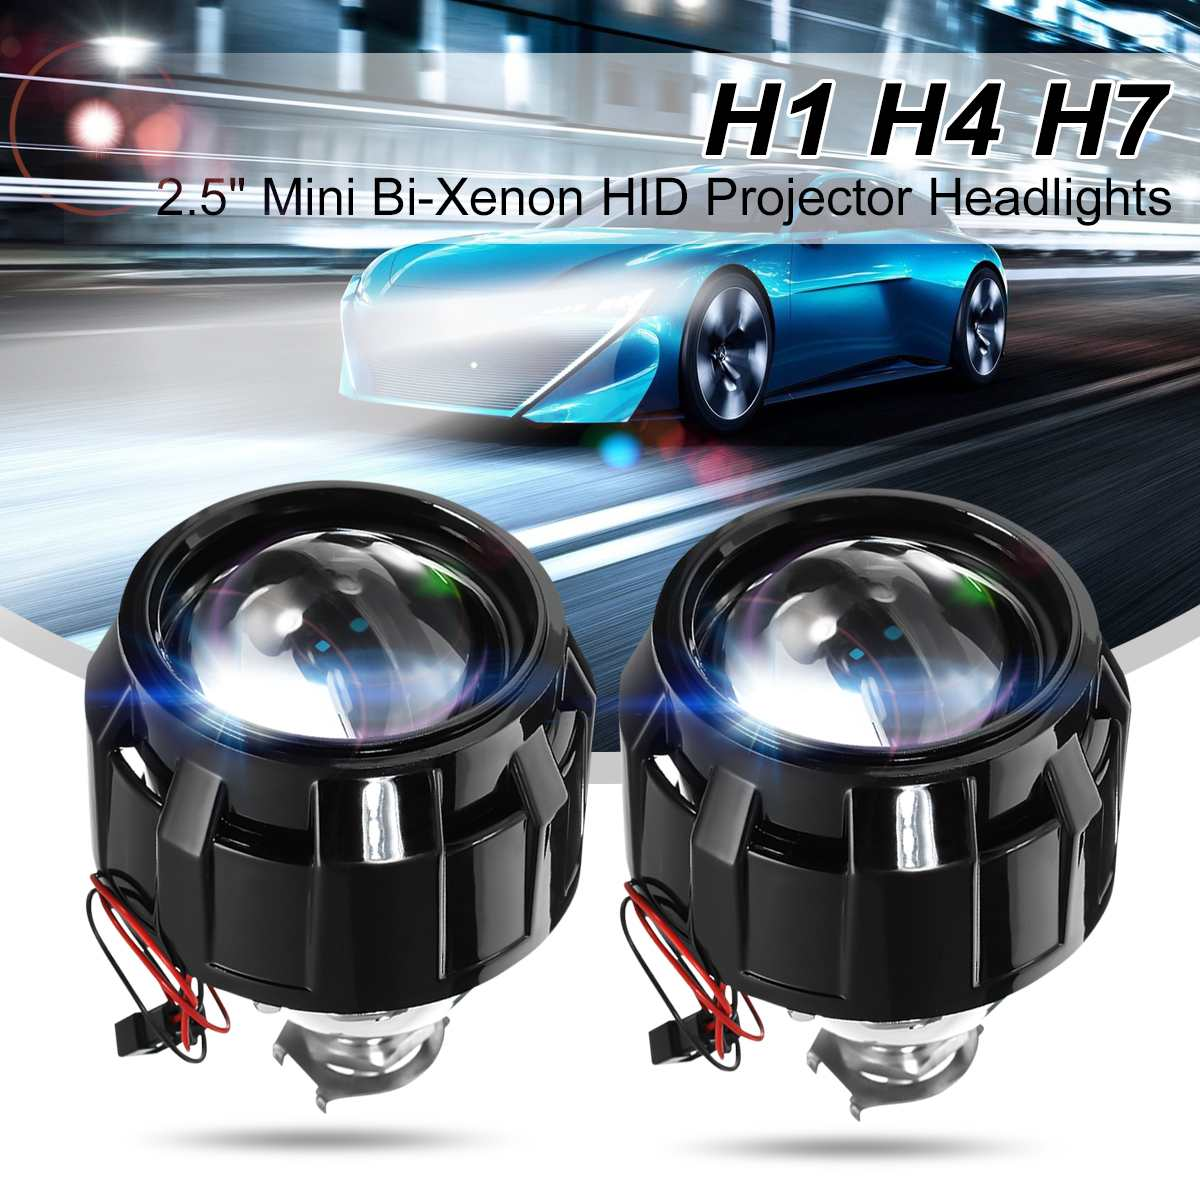 2.5 Inch Mini WST For HID Bi-xenon Projector Lens Shrouds LHD RHD For Auto Headlight H1 H4 H7